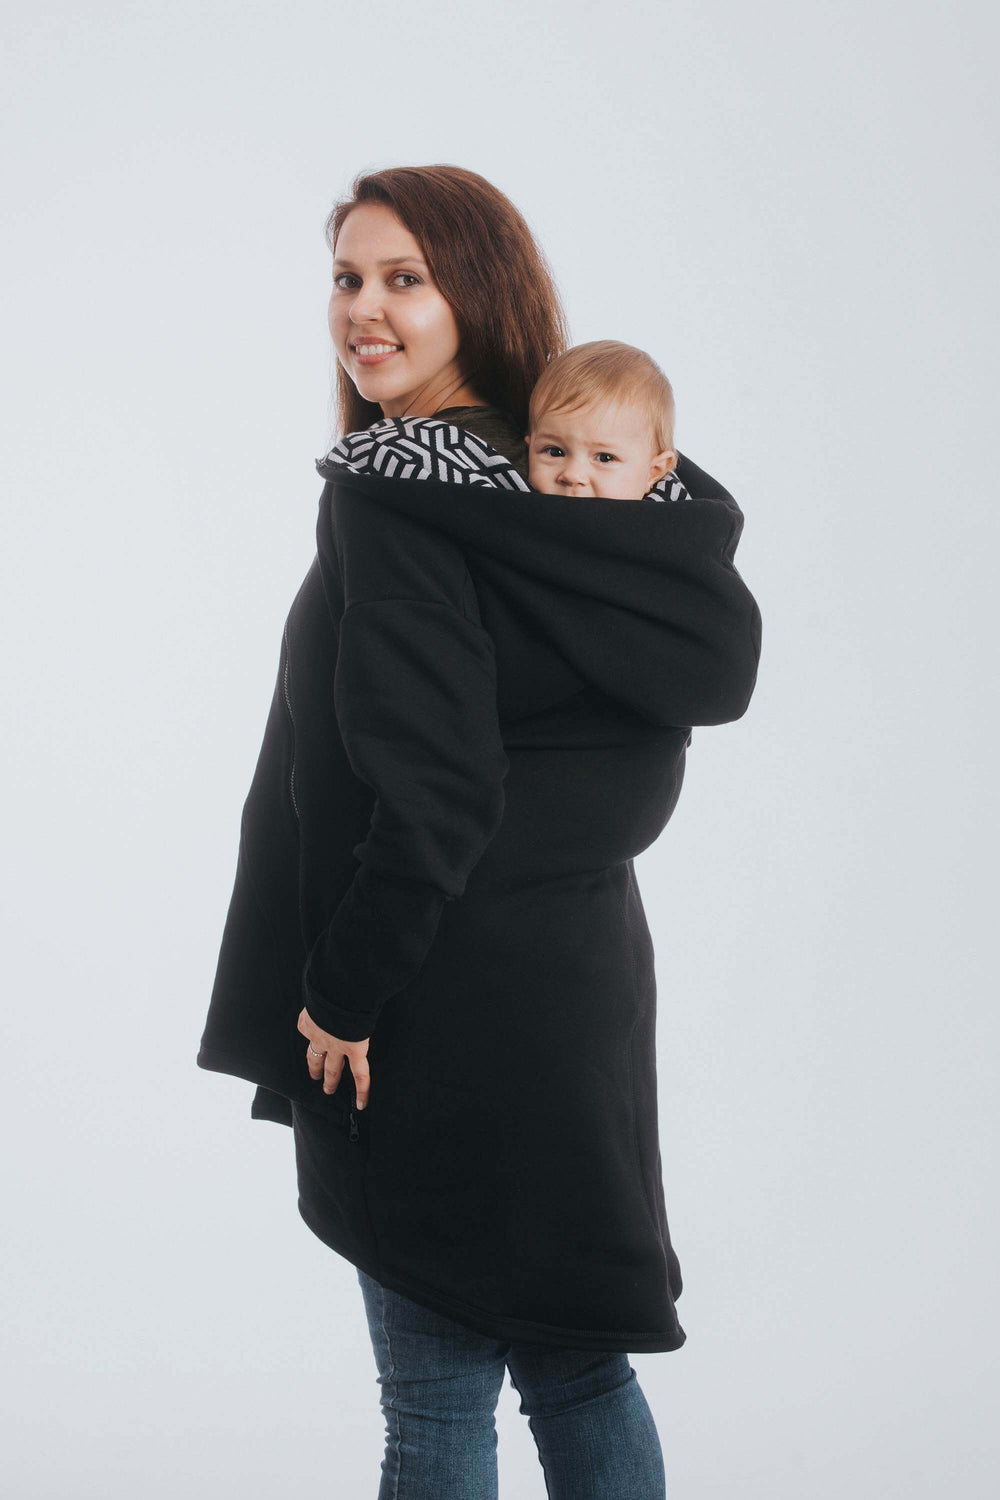 Black and White Hematite Lenny Lamb Pregancy, maternity and babywearing sweater